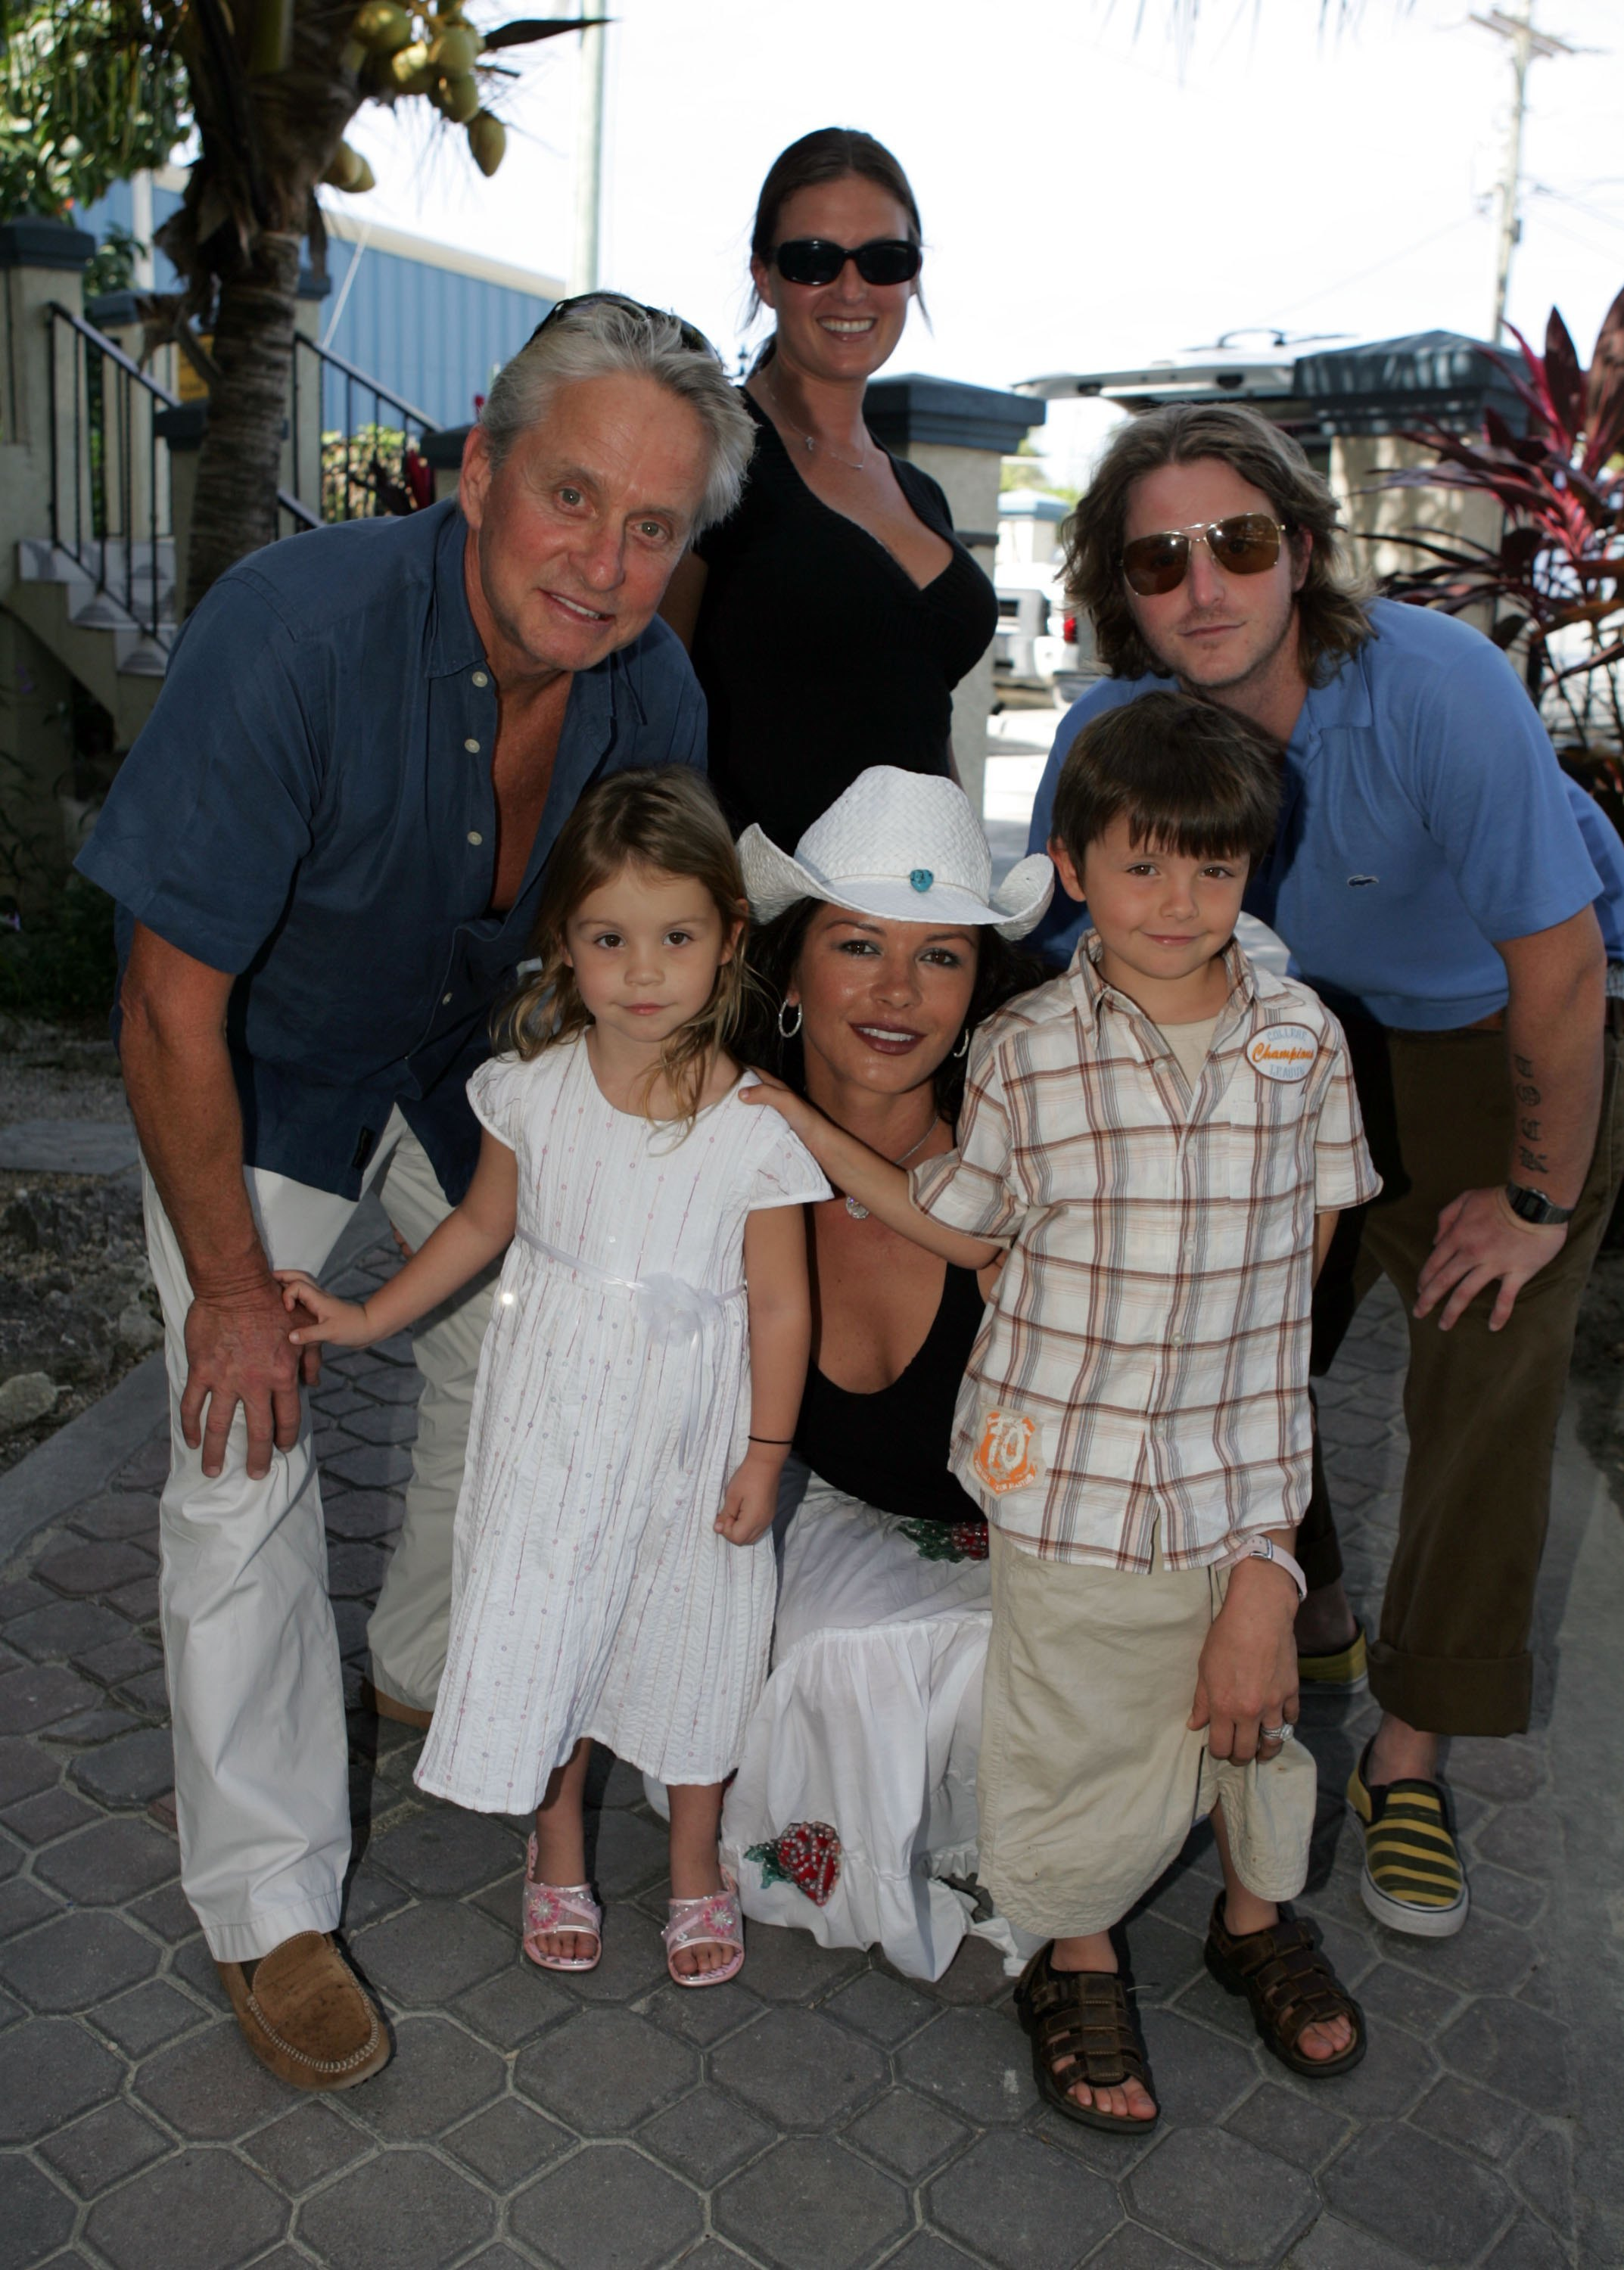 Michael Douglas, Catherine Zeta Jones, their kids Carys and Dylan, his son from a previous relationship,  Cameron Douglas, and Cameron's then girlfriend, Kelly Sott, pose for a photo at Provo airport in Turks and Caicos on Jan. 5, 2007.